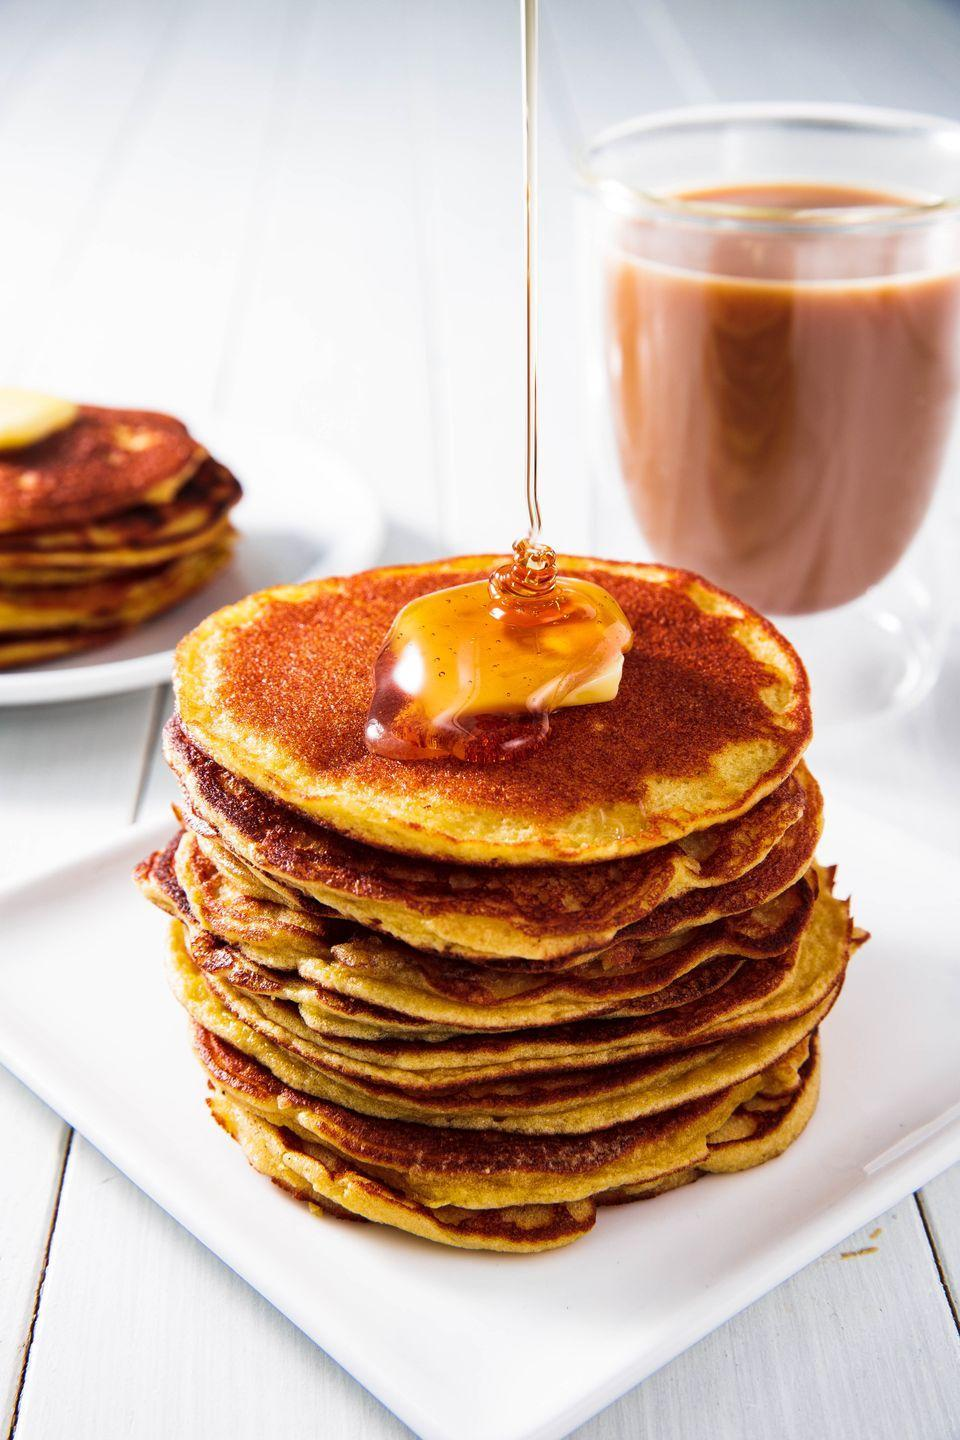 "<p>Super soft and tender, with just a hint of sweetness.</p><p>Get the recipe from <a href=""https://www.delish.com/cooking/recipe-ideas/a25350343/coconut-flour-pancakes-recipe/"" rel=""nofollow noopener"" target=""_blank"" data-ylk=""slk:Delish"" class=""link rapid-noclick-resp"">Delish</a>. </p>"